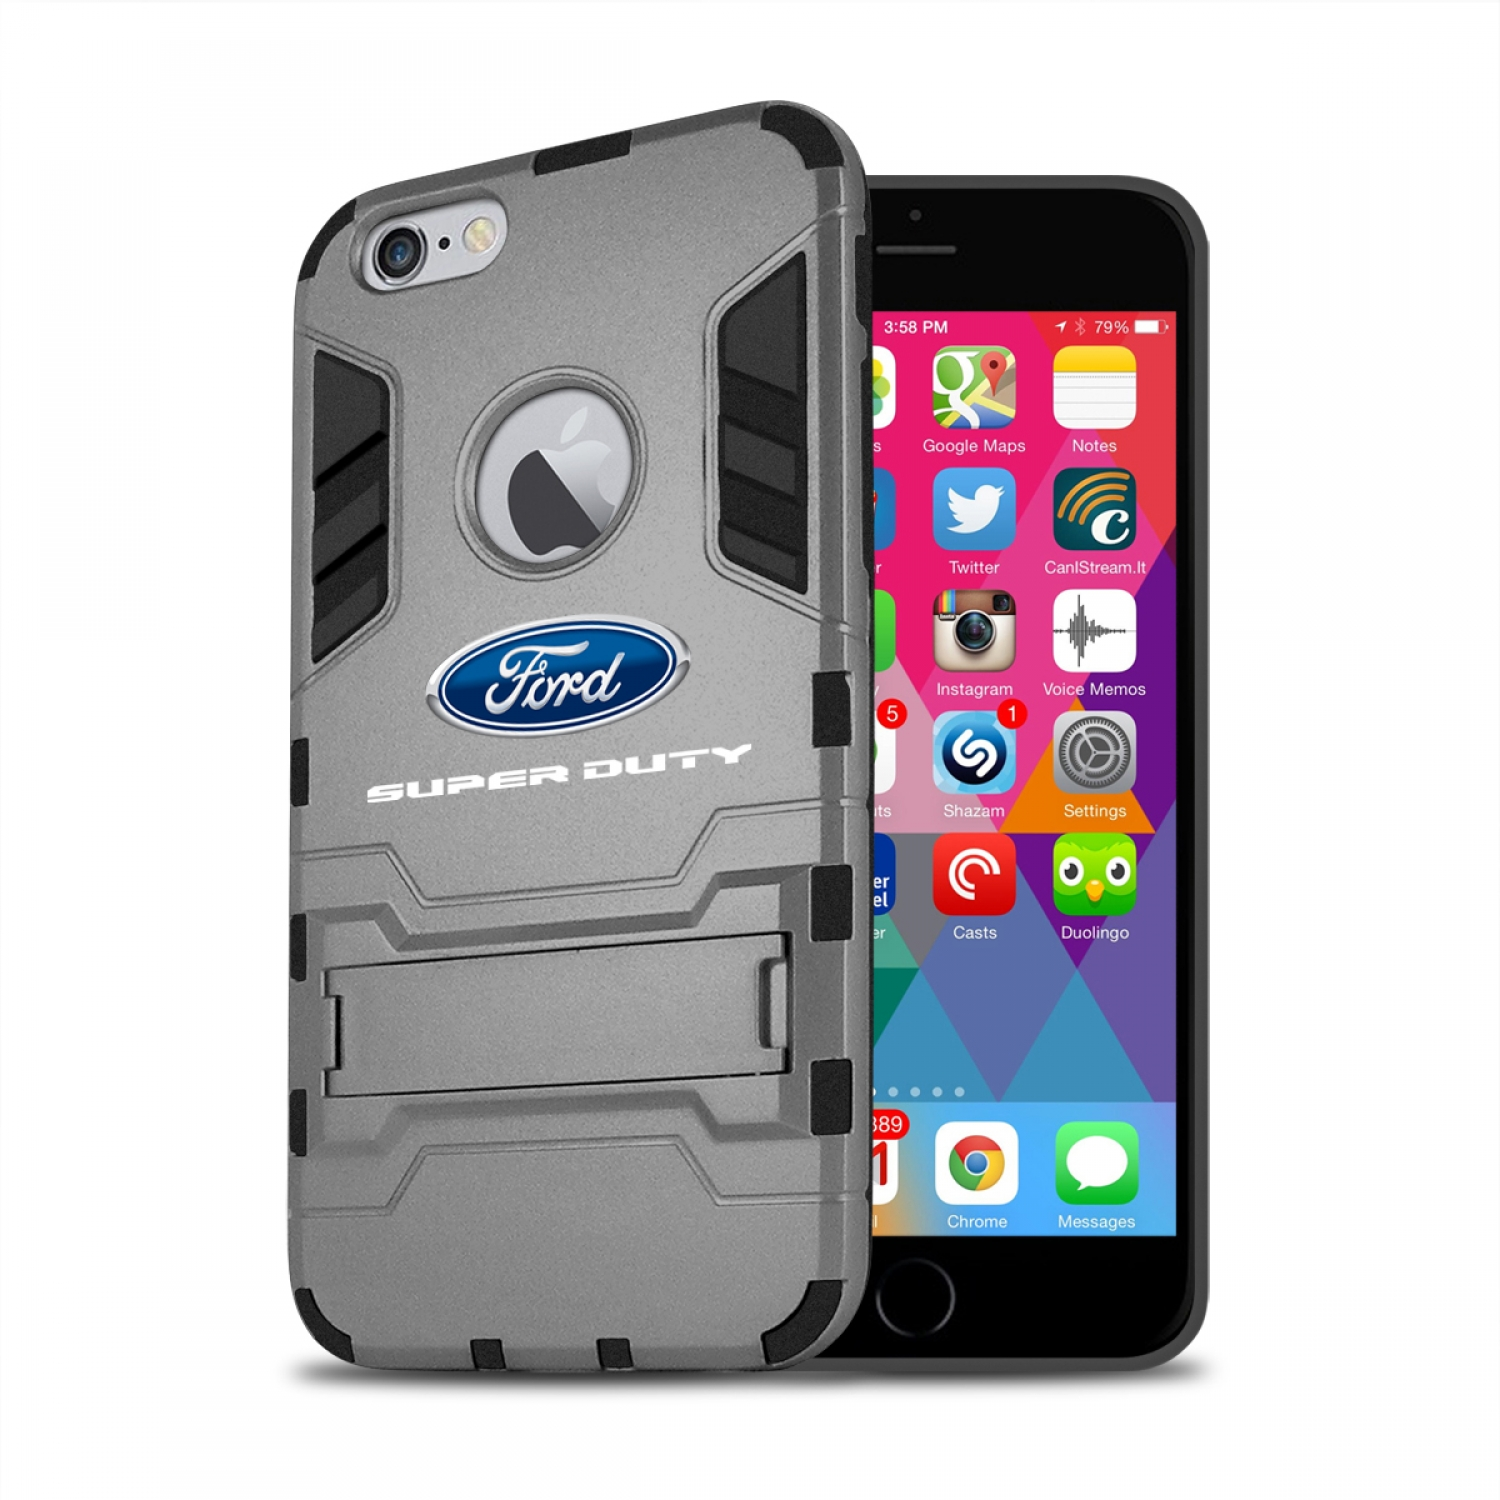 Ford Super Duty iPhone 6 6s Shockproof TPU ABS Hybrid Dark Gray Phone Case